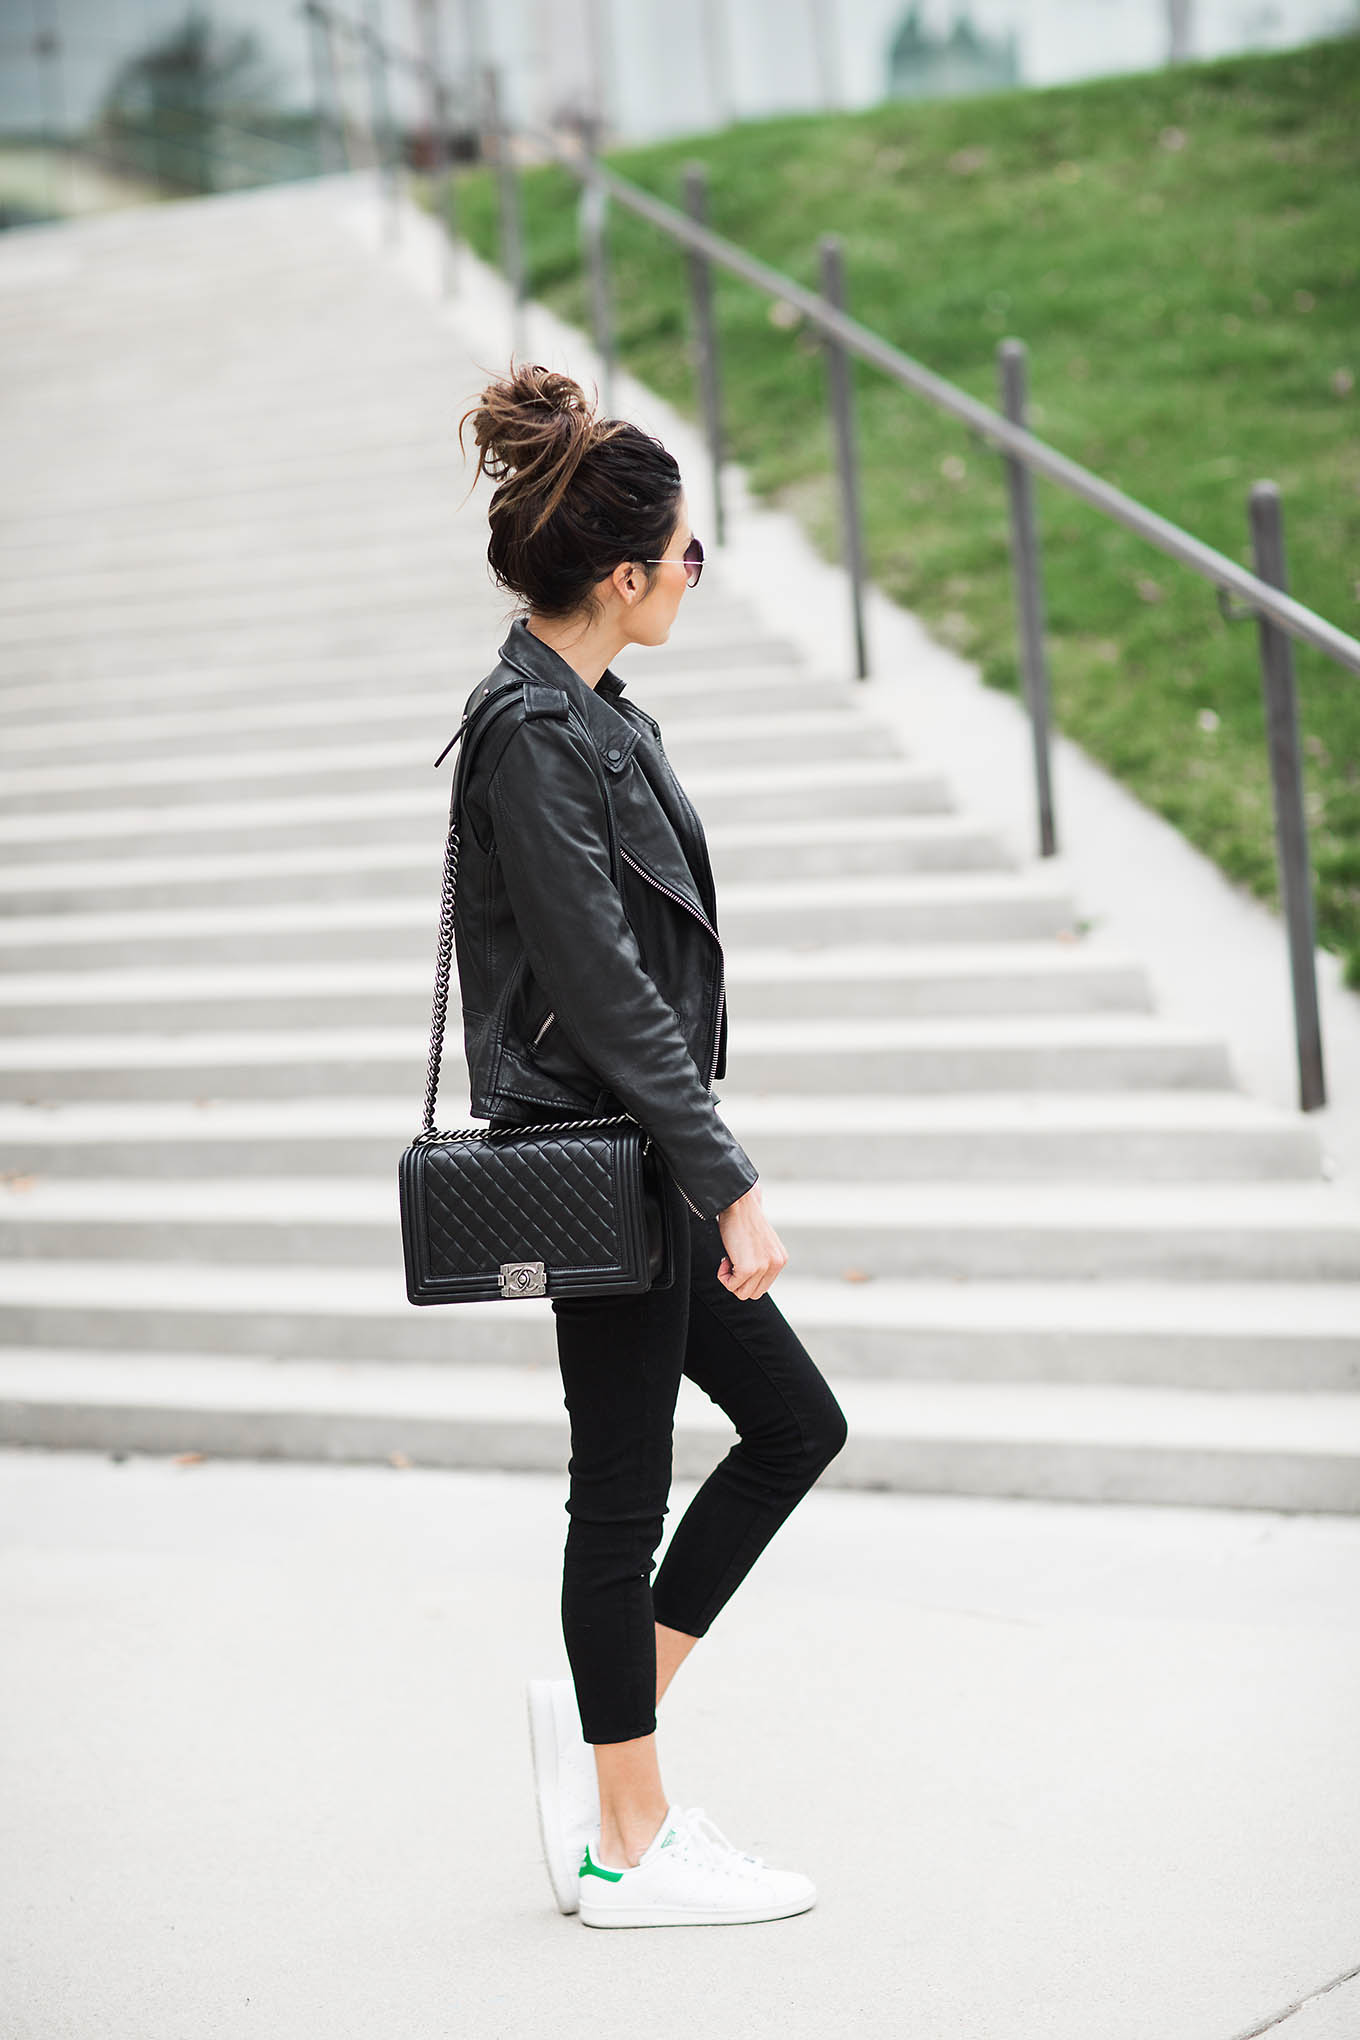 Christine Andrew keeps it simple in an all black outfit consisting of cropped black jeans, a leather jacket, and a cross body quilted leather bag. We suggest wearing an all black outfit if you want to achieve a casual yet sophisticated style. Jacket: All Saints, Jeans: Nordstrom.